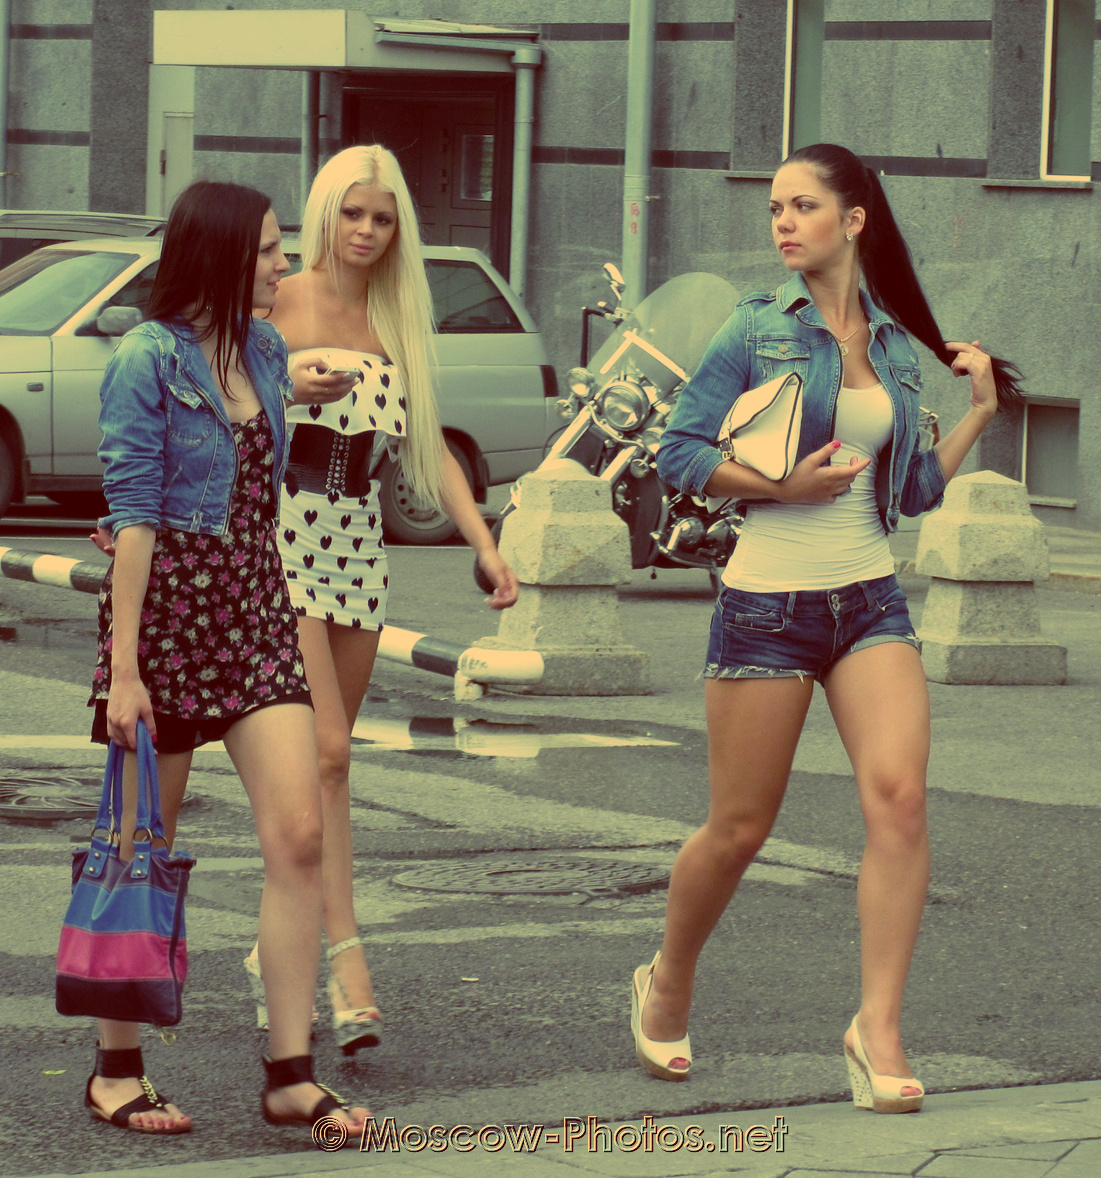 Girls walking in summer